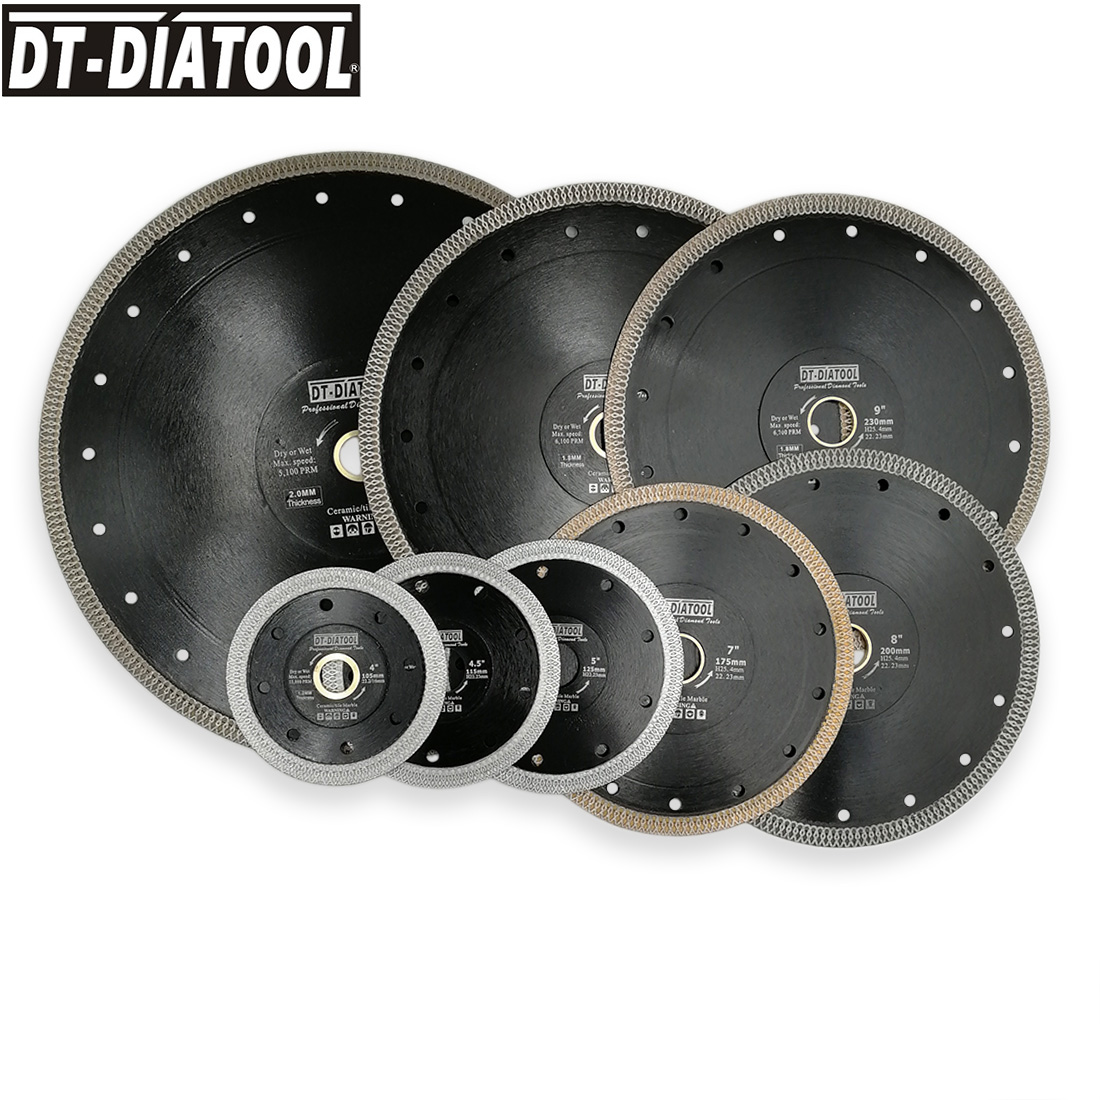 "DT-DIATOOL 1pc Dia 4""-12"" Super-thin Diamond Cutting Disc X Mesh Turbo Rim Segment Saw Blades For Ceramic Tile Porcelain"